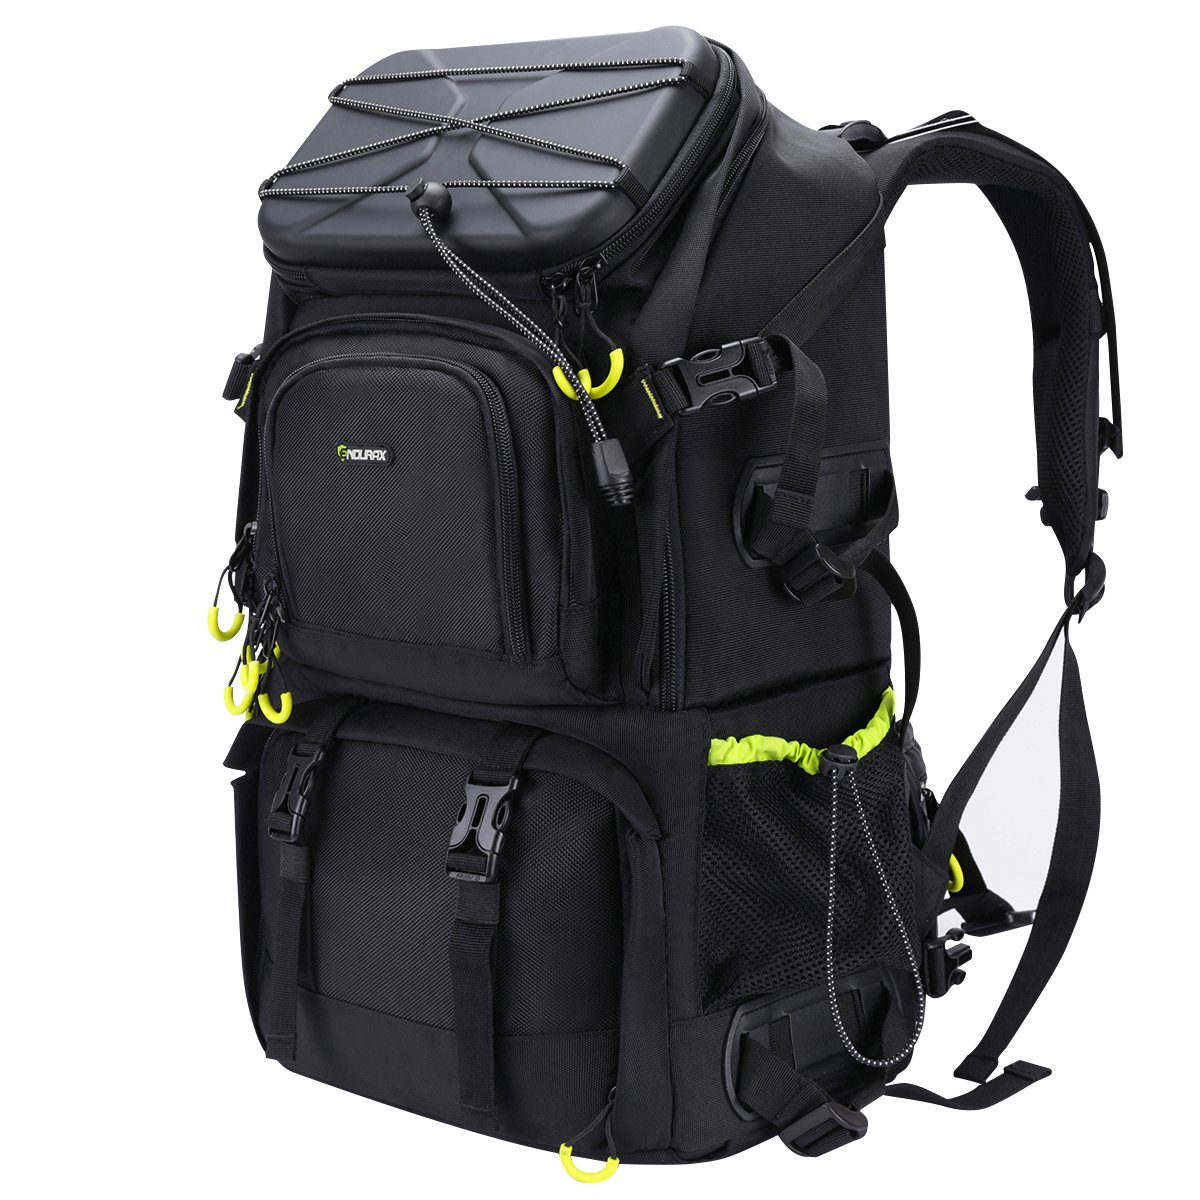 Endurax Extra Large Camera DSLR/SLR Backpack For Outdoor Hiking Trekking With 15.6 Laptop Compartment